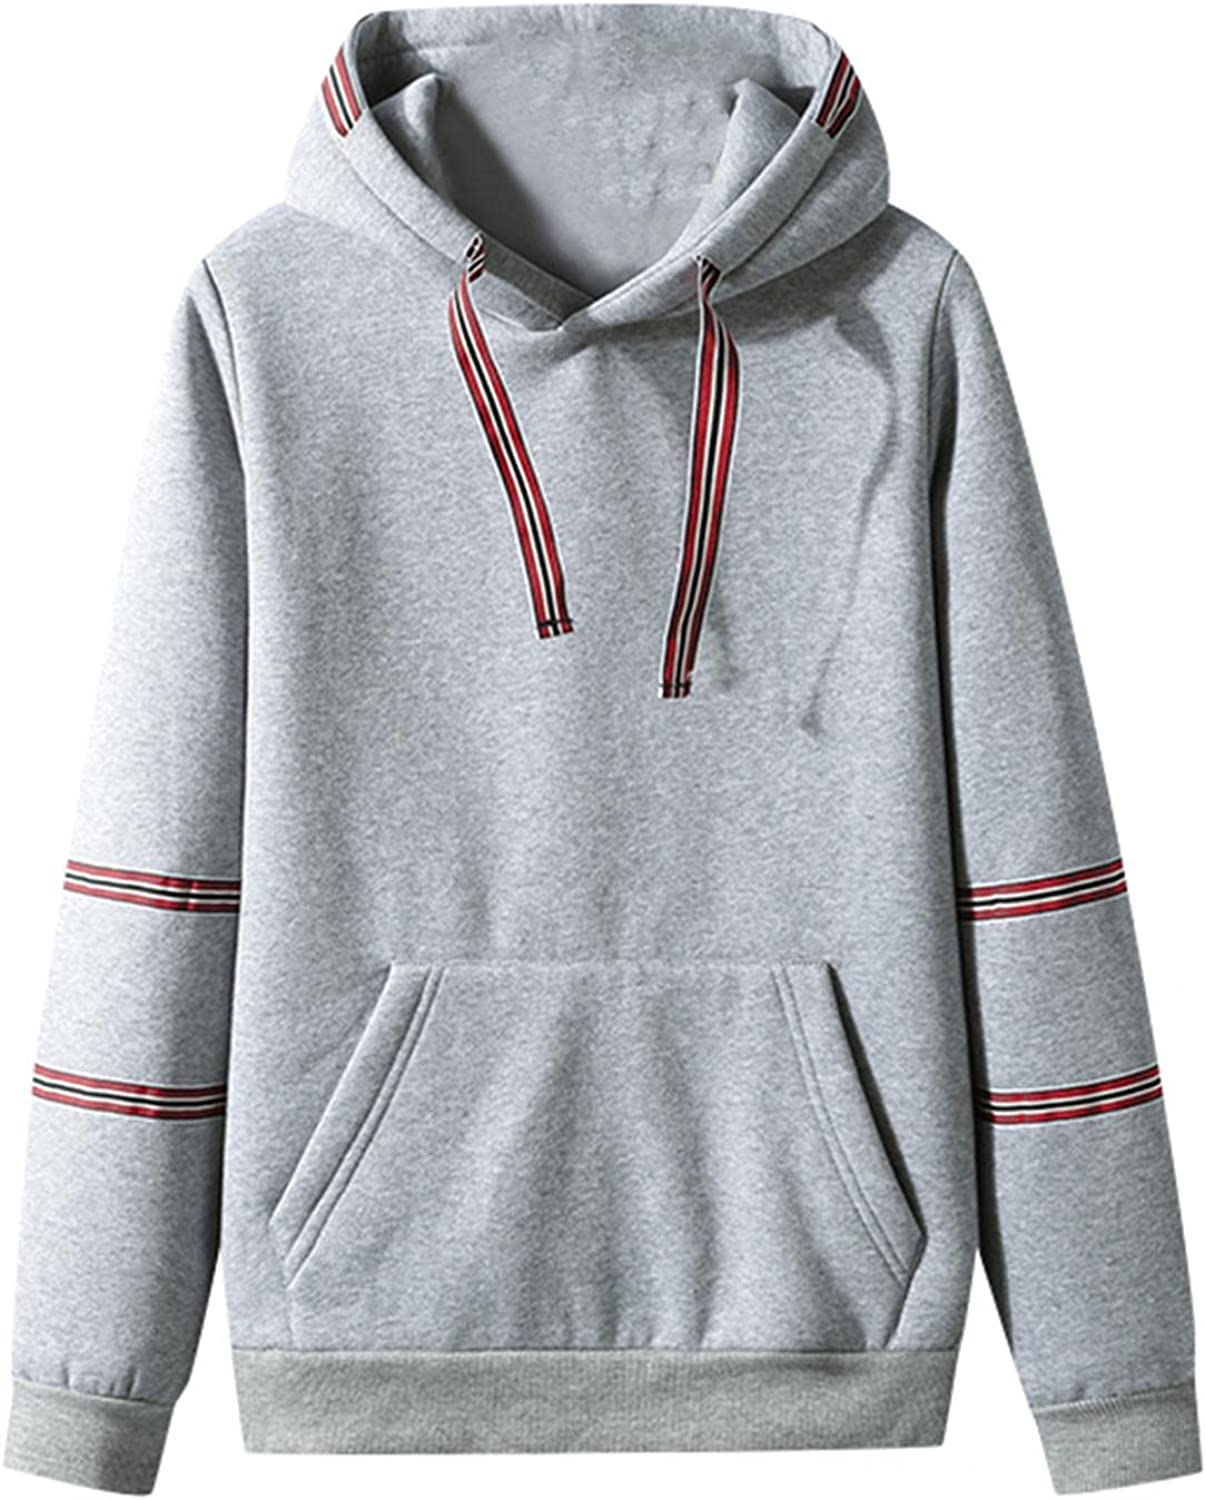 Hoodies for Men Stripe Fashion Mens Athletic Hoodies Casual Loose Long Sleeve Sweatshirt Workout Sports Gym Pullover